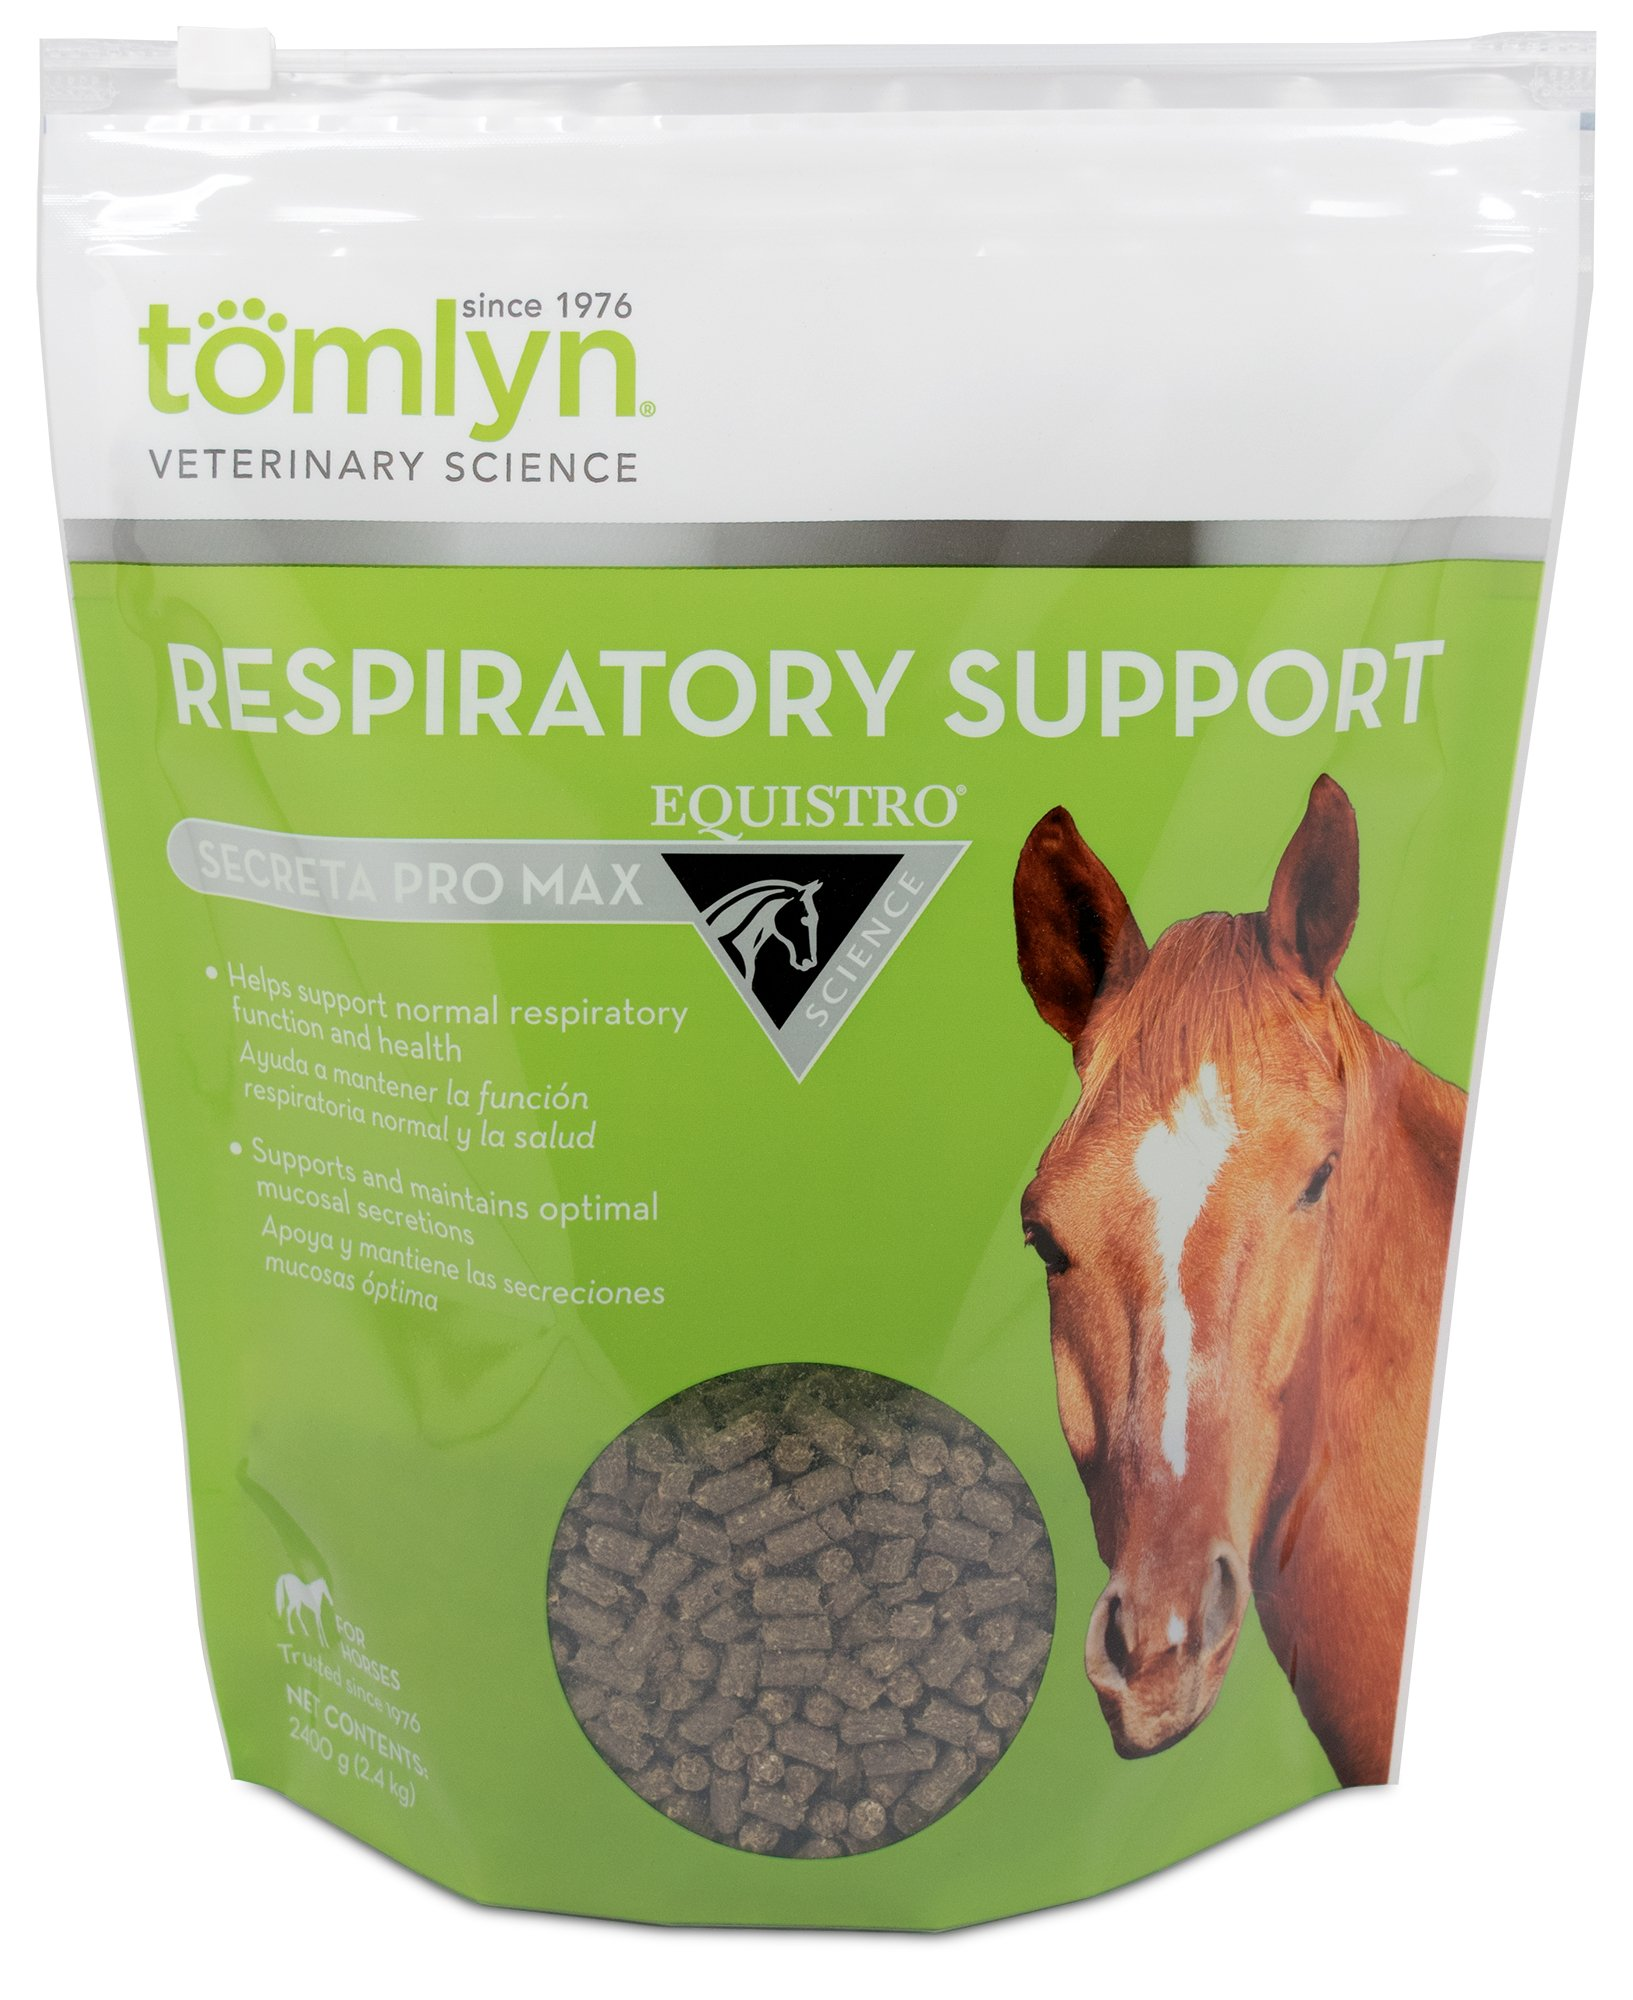 Tomlyn Equistro Respiratory Support for Horses, 5.75 kg